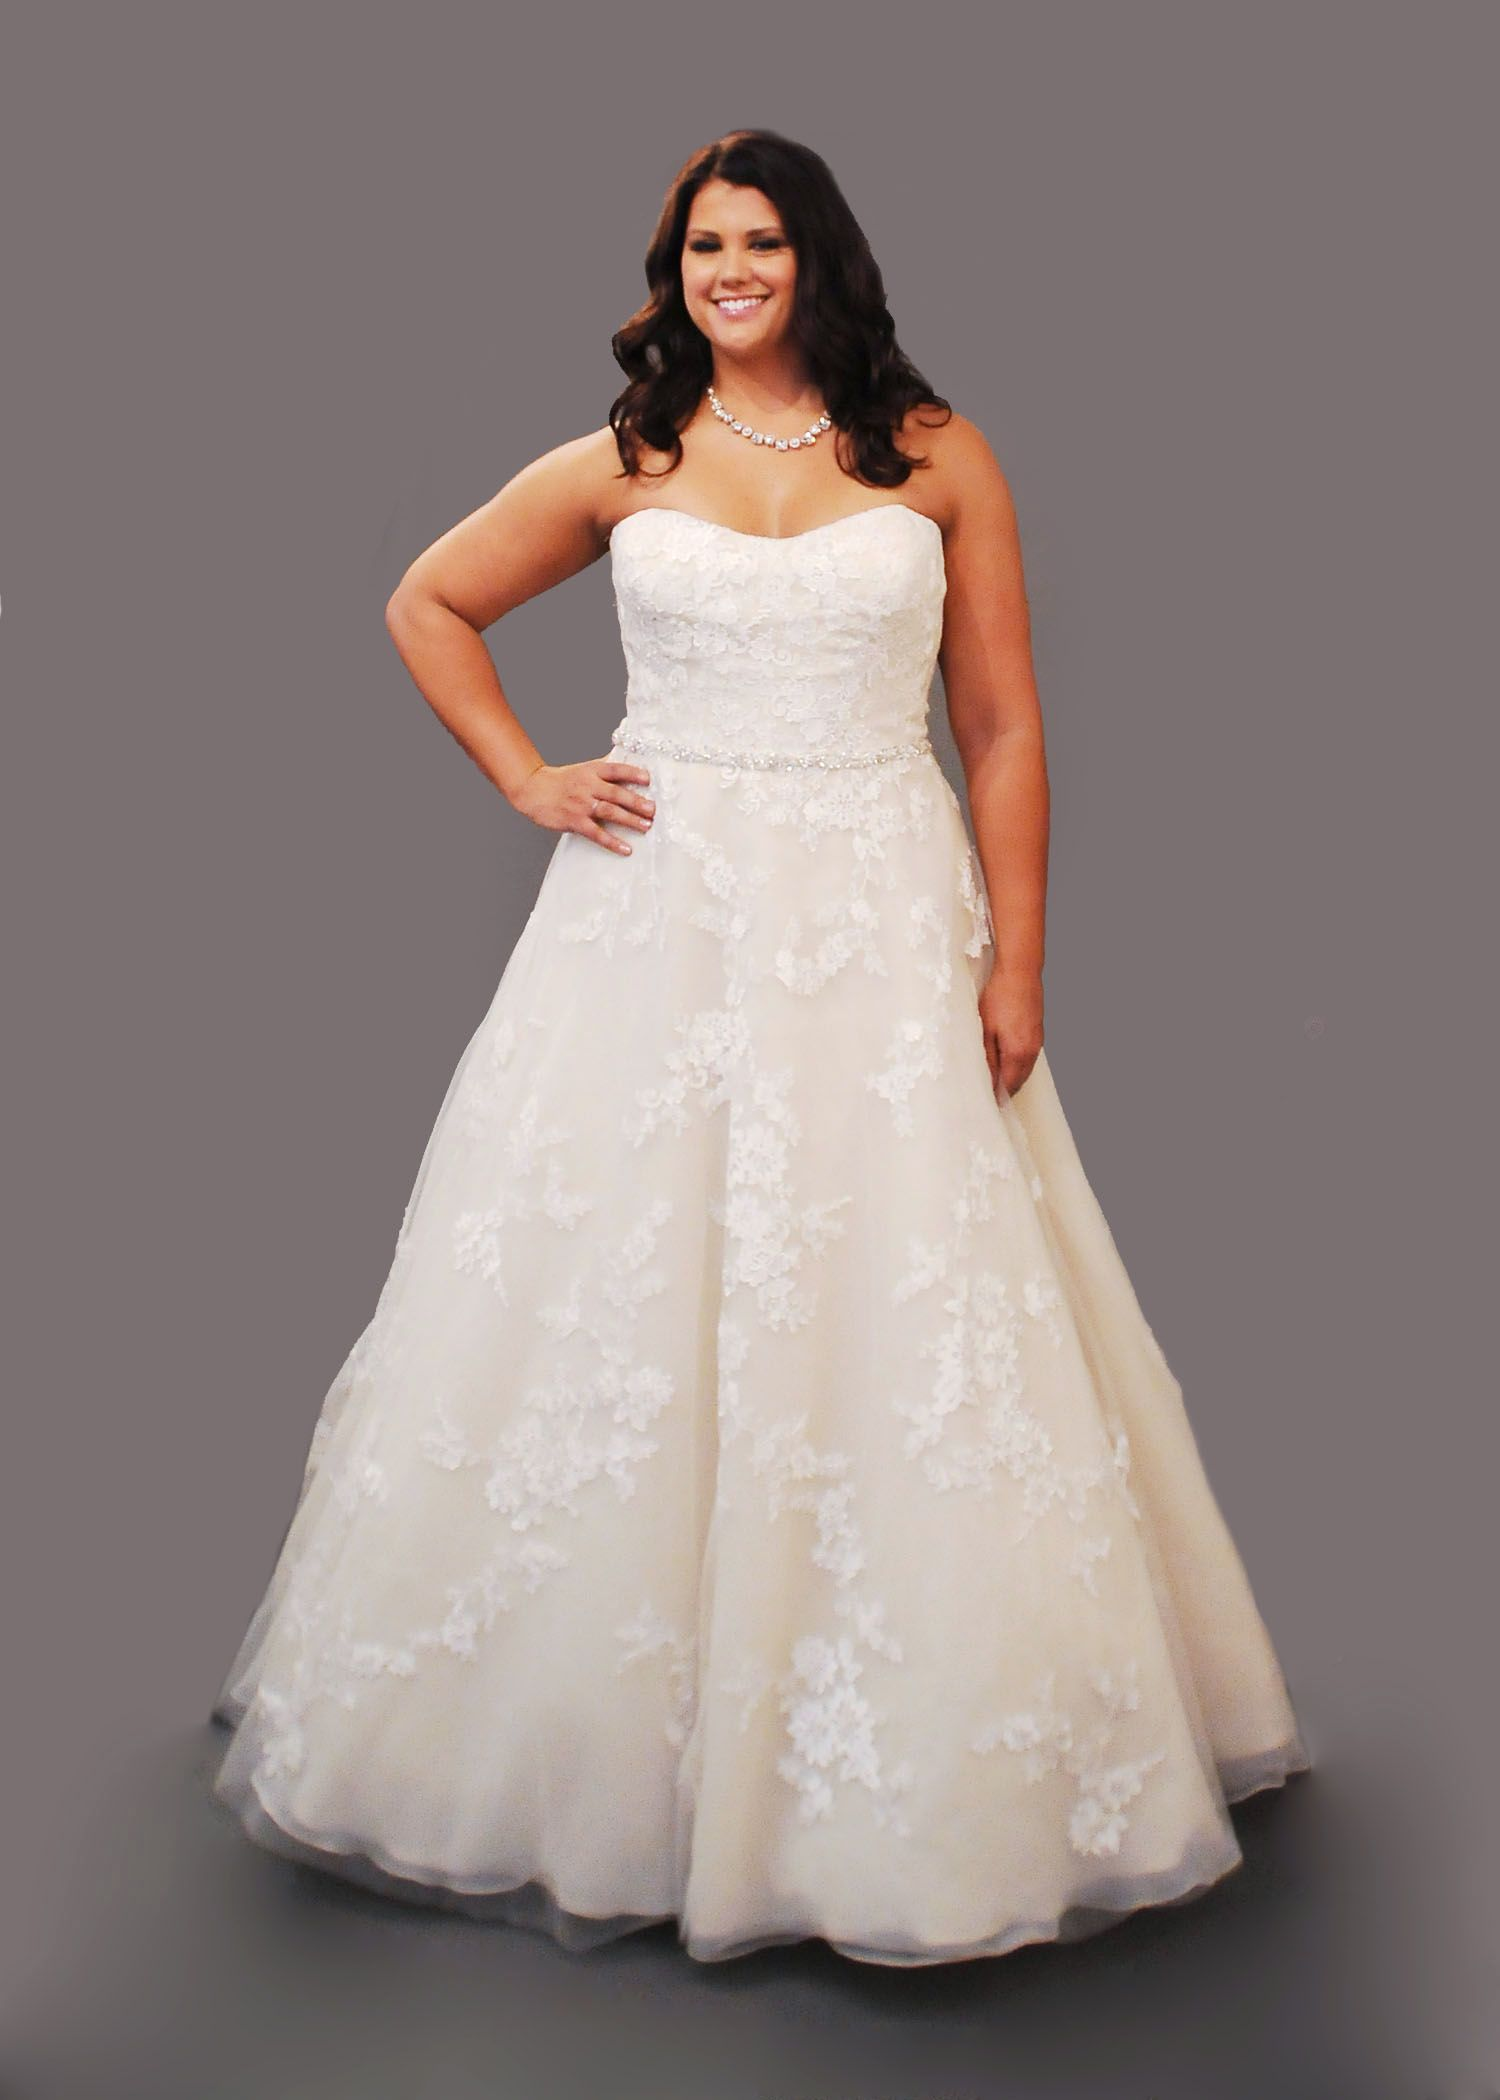 Curvy bride plus size wedding dress plus size fashion curvy curvy bride plus size wedding dress plus size fashion curvy wedding gown ombrellifo Choice Image